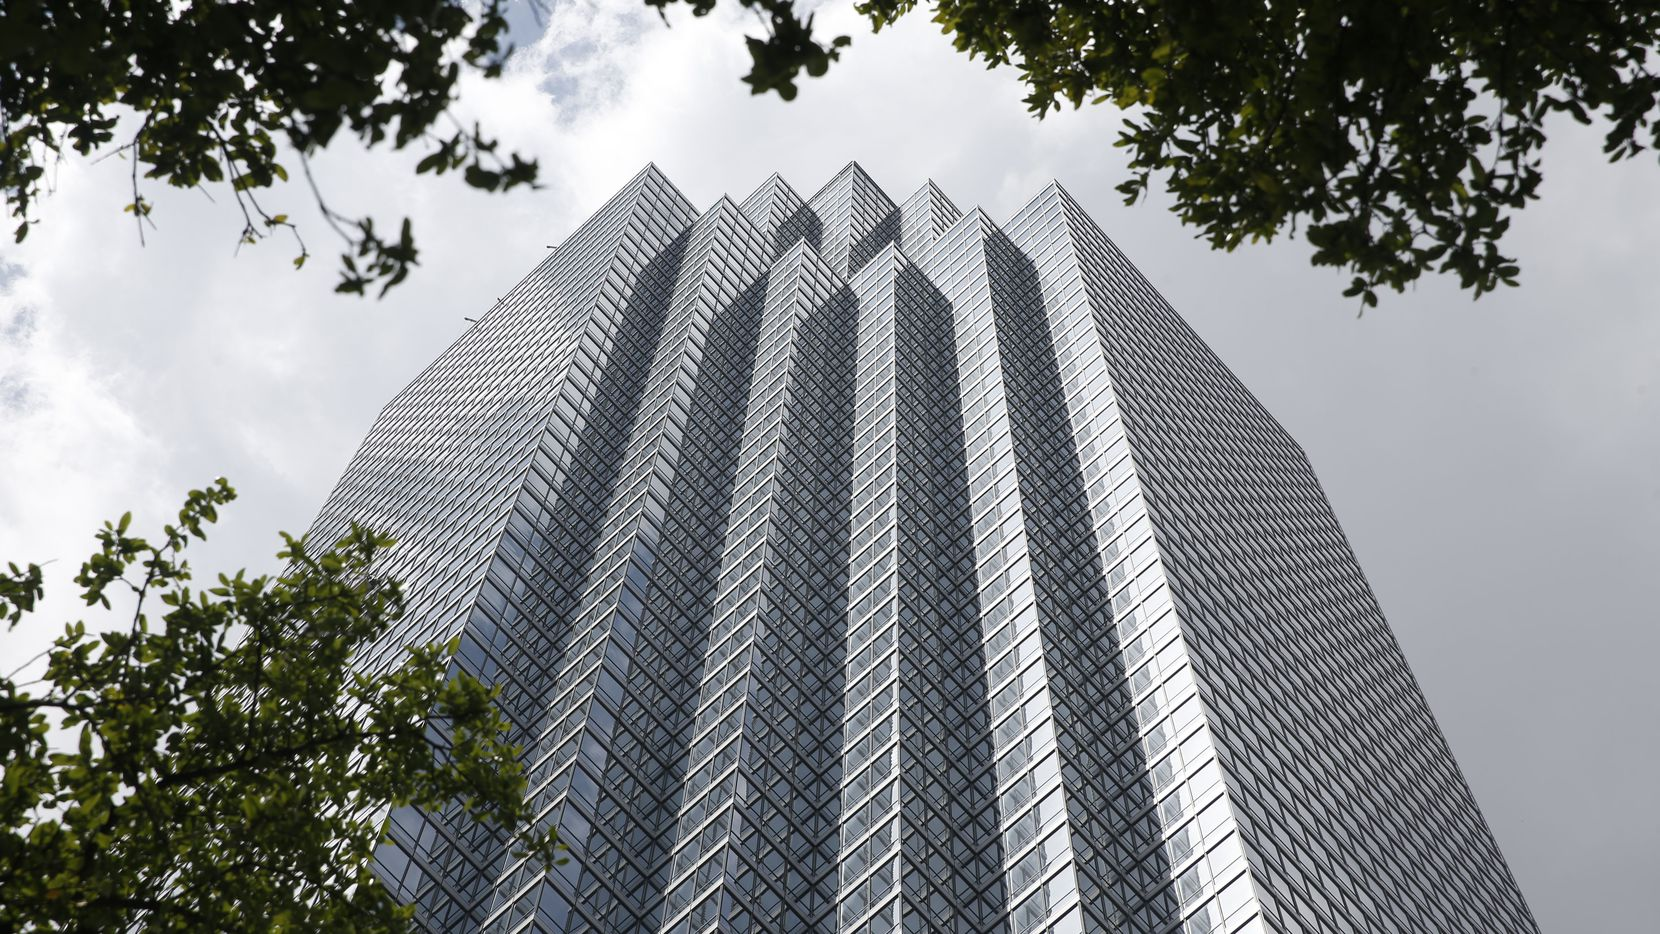 The Bank of America Plaza opened in 1985 has has remained Dallas' biggest skyscraper.